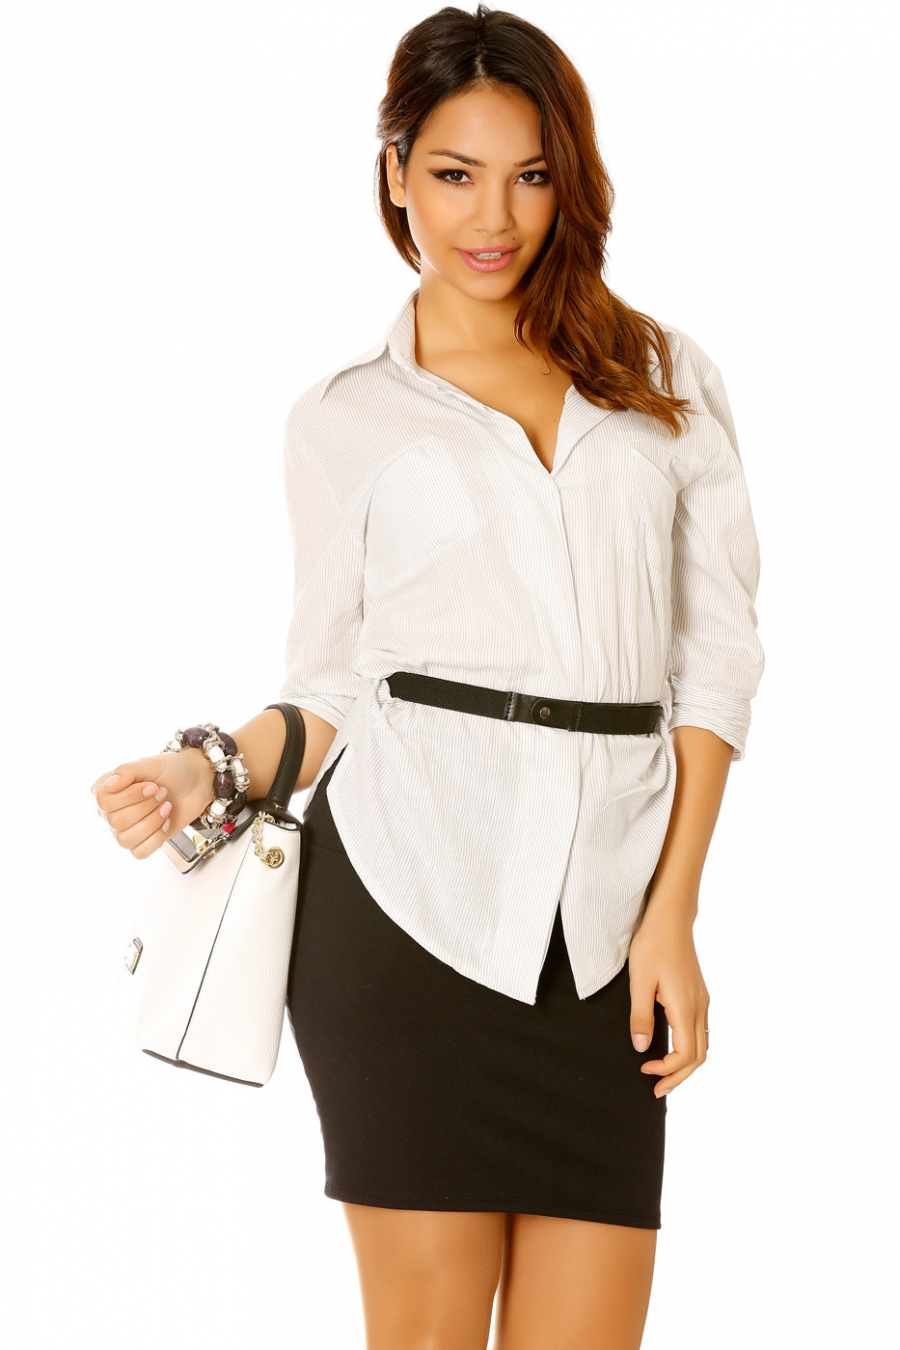 White and black pinstripe blouse 3/4 sleeve with belt - 13145